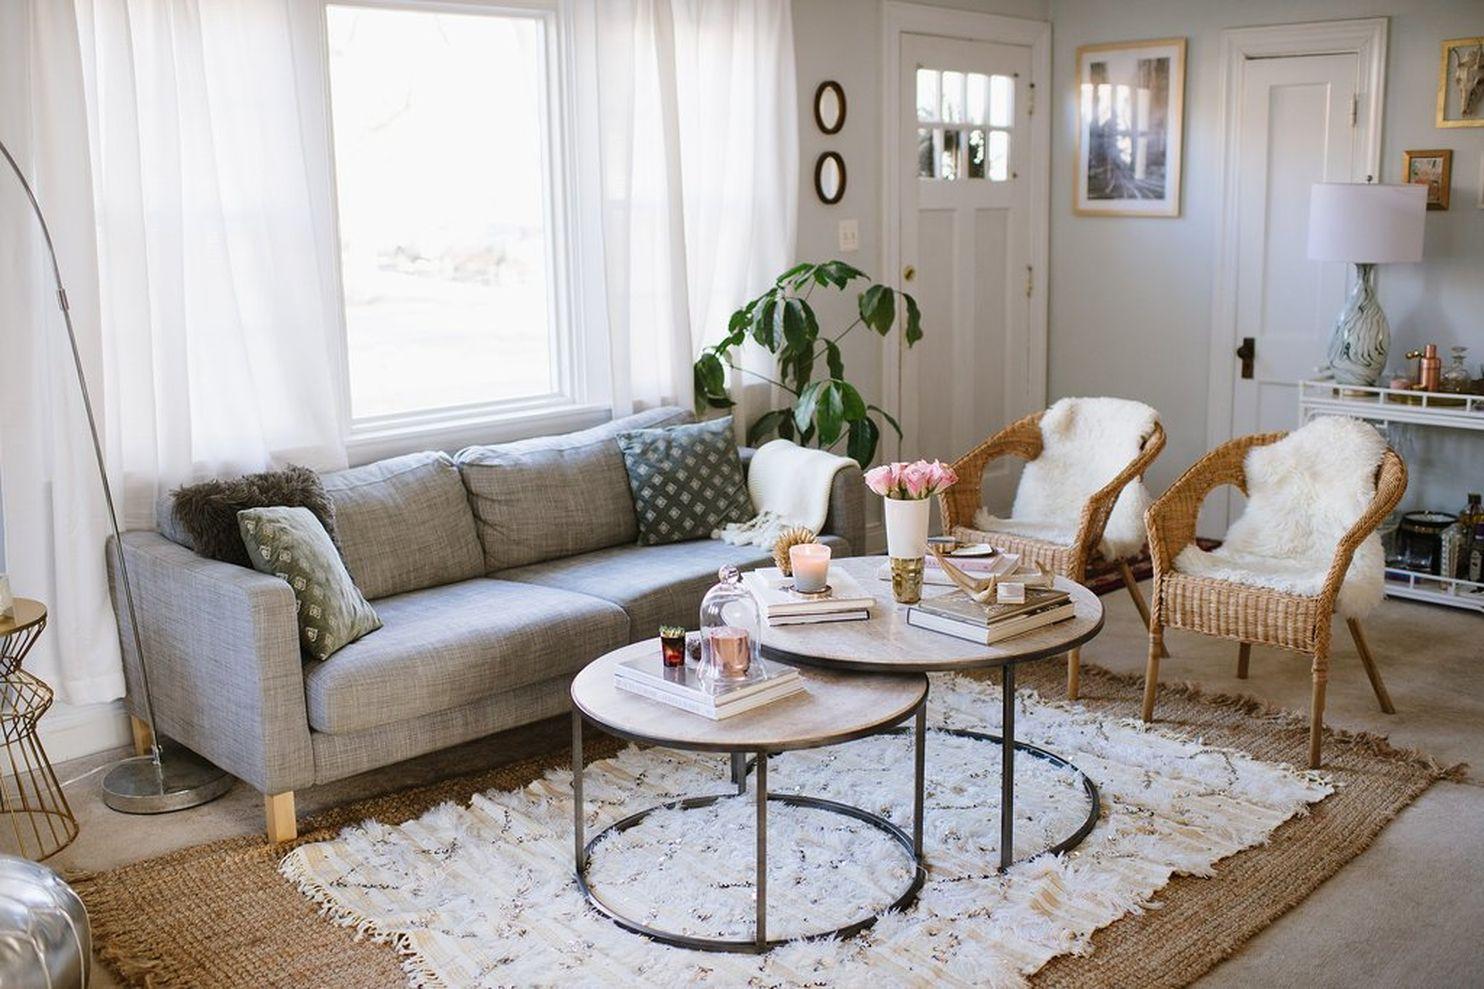 Living room ideas for an apartment 18